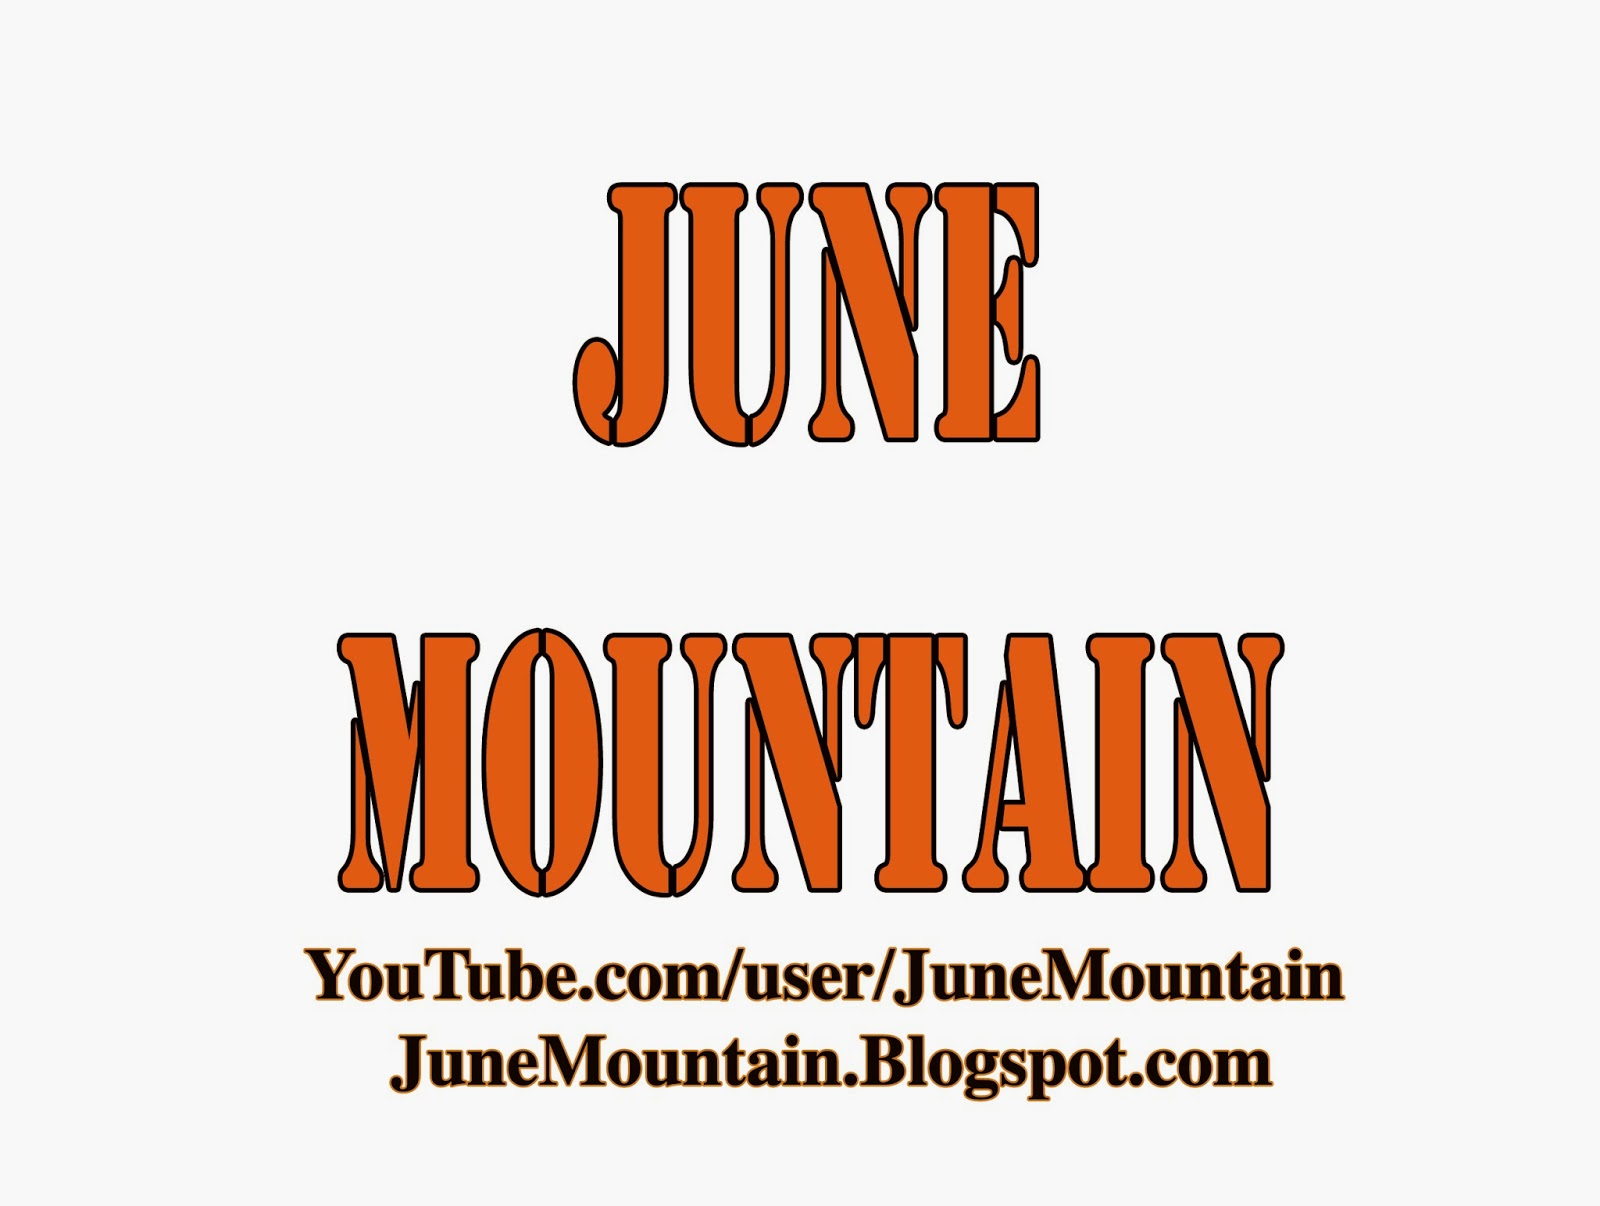 https://www.youtube.com/user/junemountain